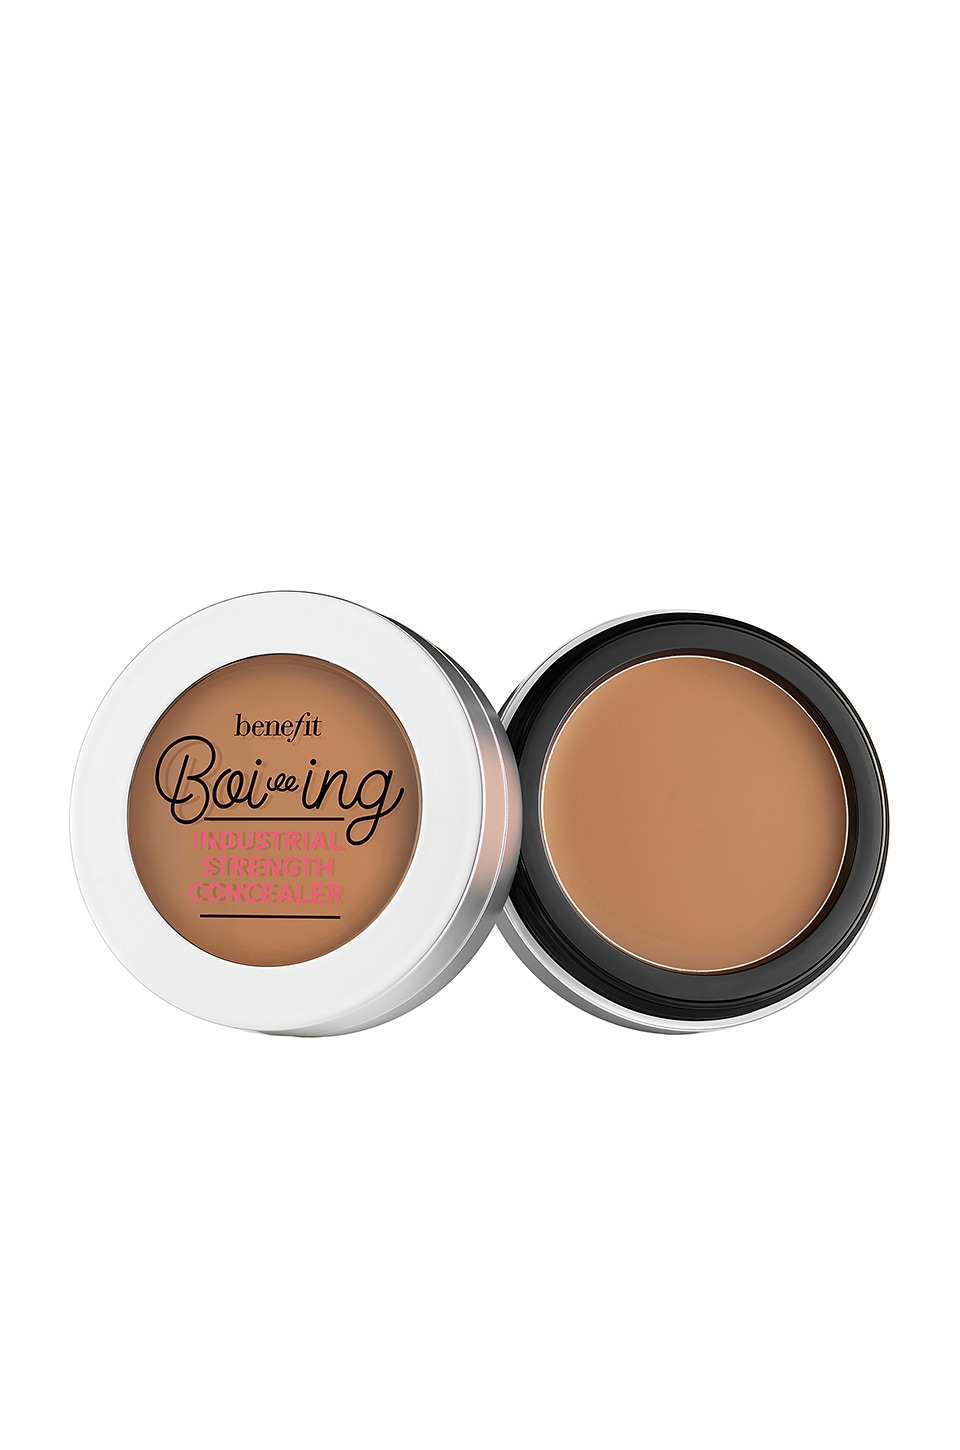 Benefit Cosmetics CORRECTOR BOI-ING INDUSTRIAL STRENGTH